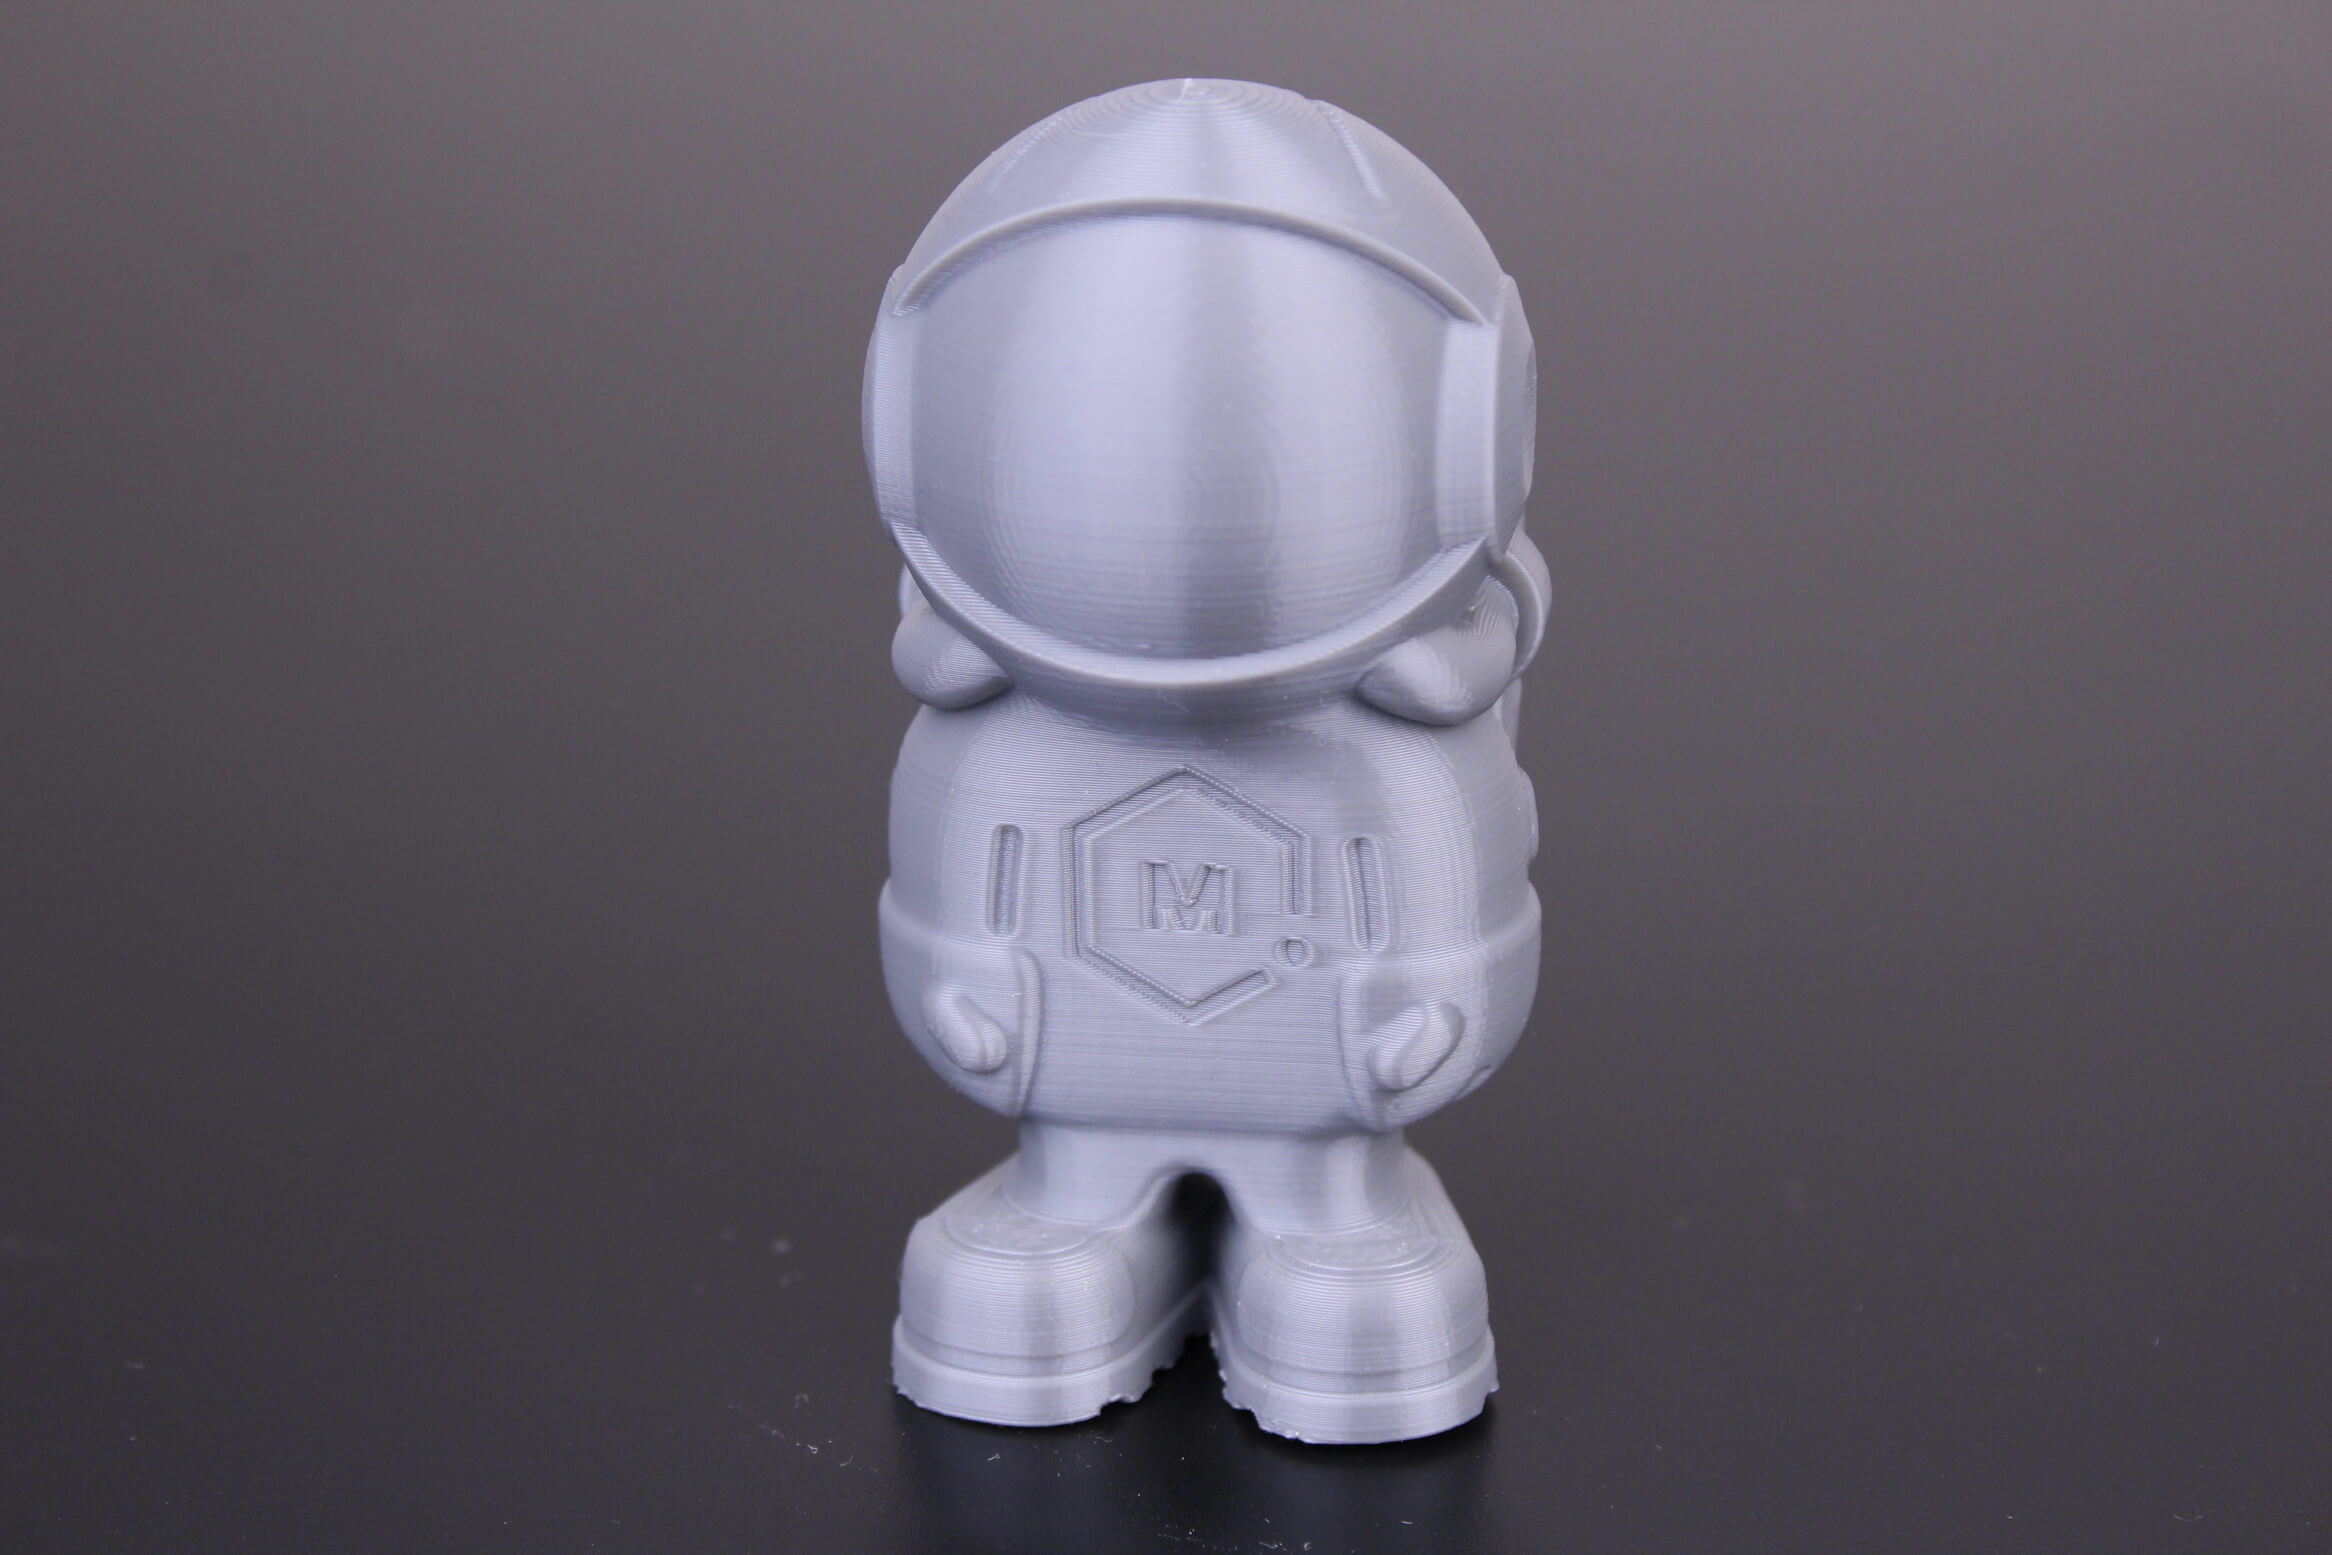 Bluer-Plus-Review-Phil-A-Ment-printed-in-Grey-PLA-1